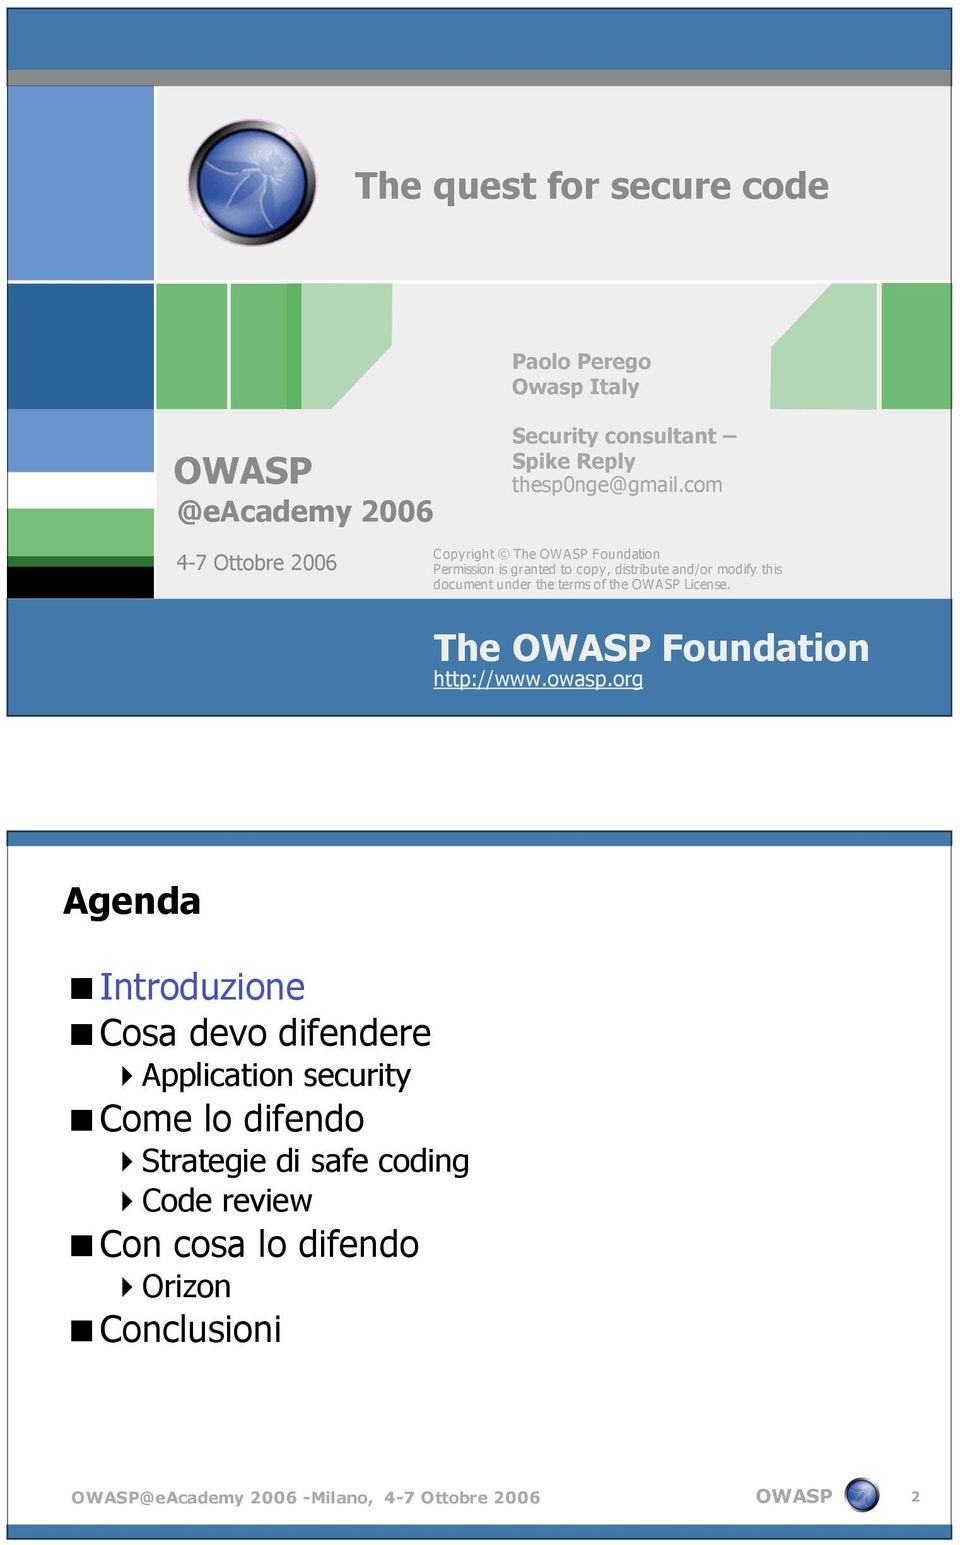 the terms of the License. The Foundation http://www.owasp.